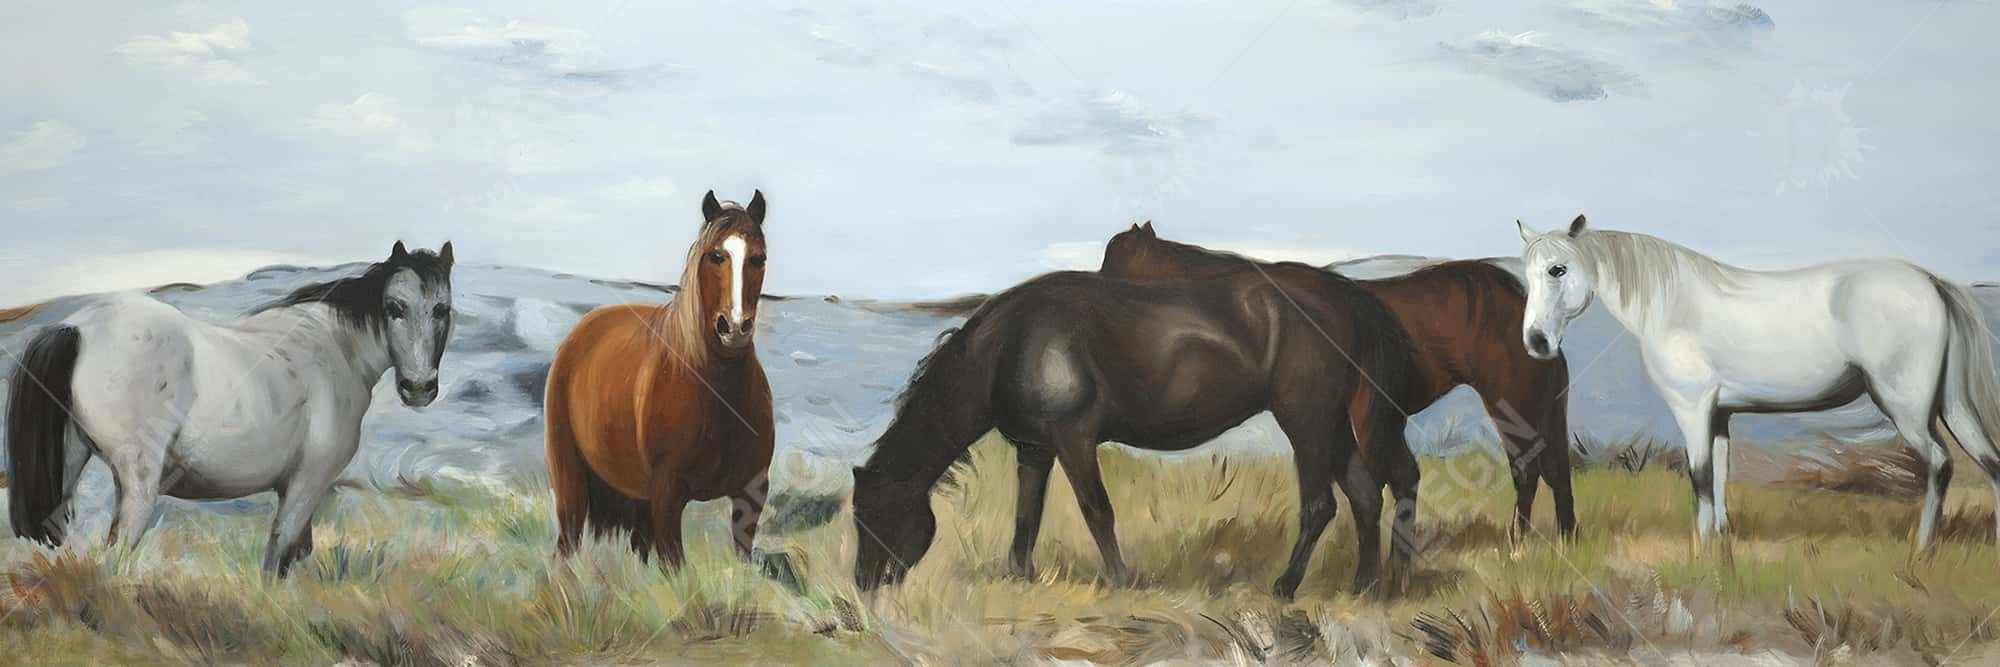 Horses eating in the meadow